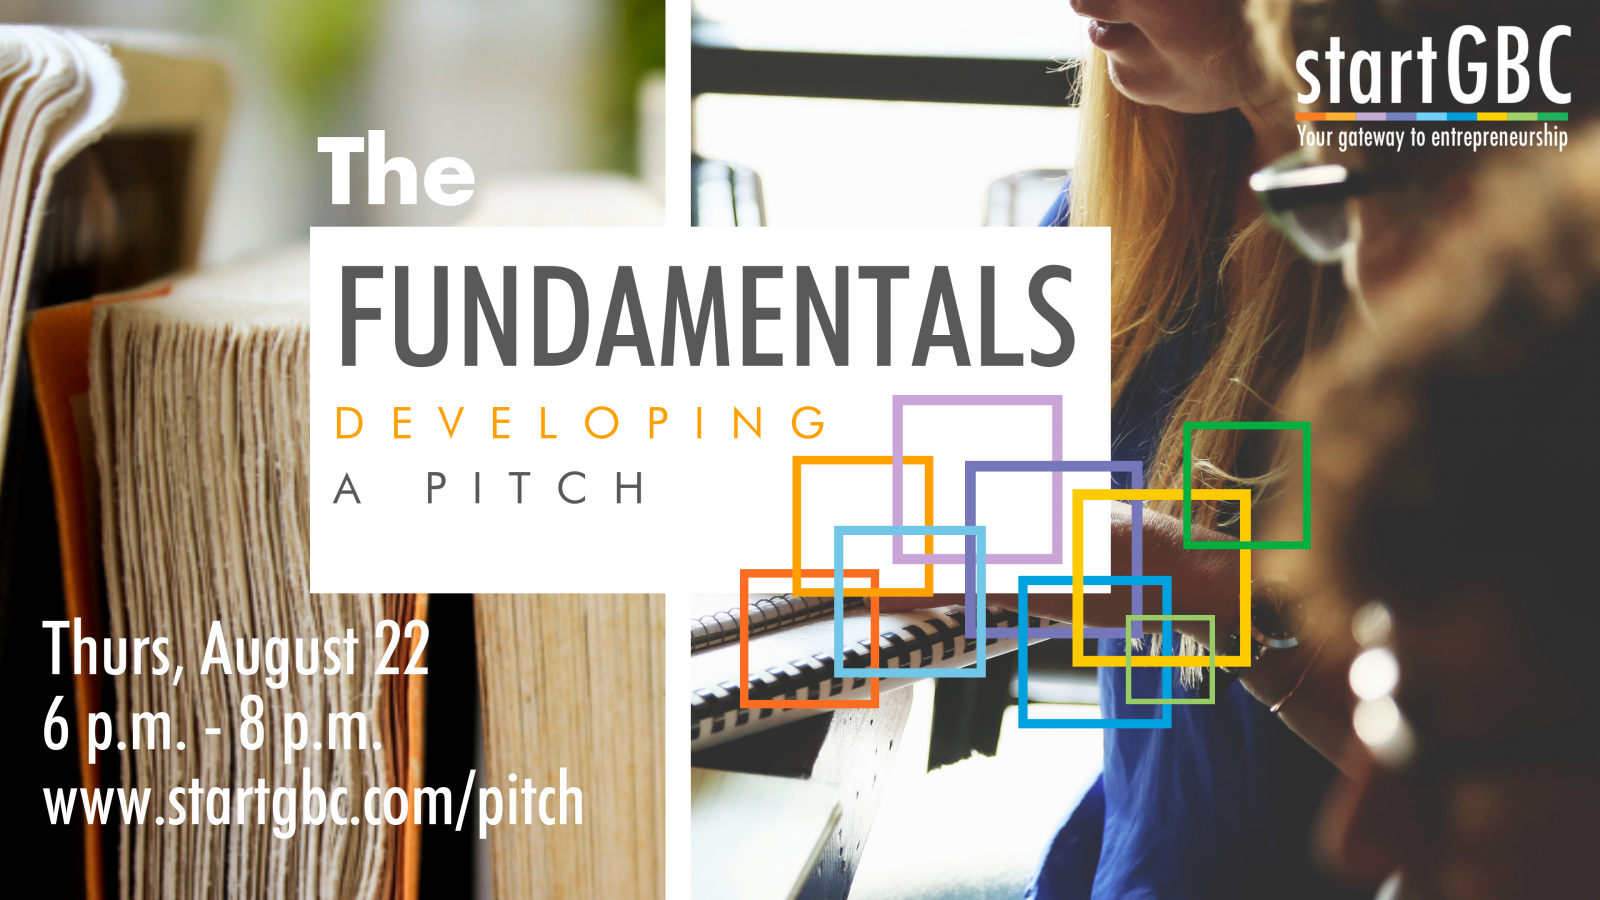 startGBC The Fundamentals: Developing a Pitch Workshop